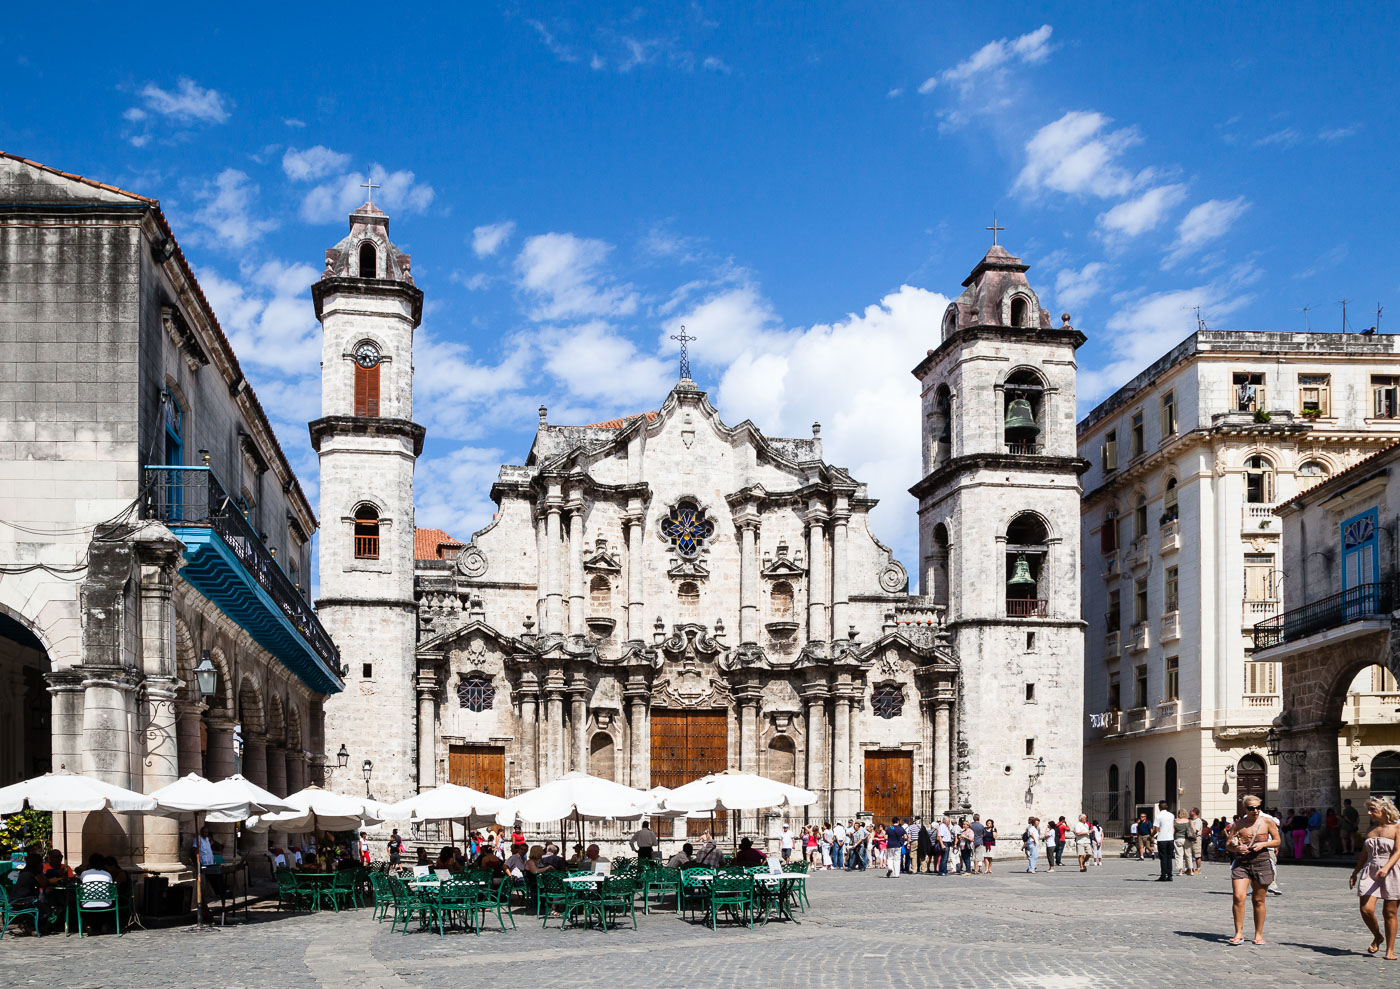 Cathedral of the Virgin Mary of the Immaculate Conception, Havana